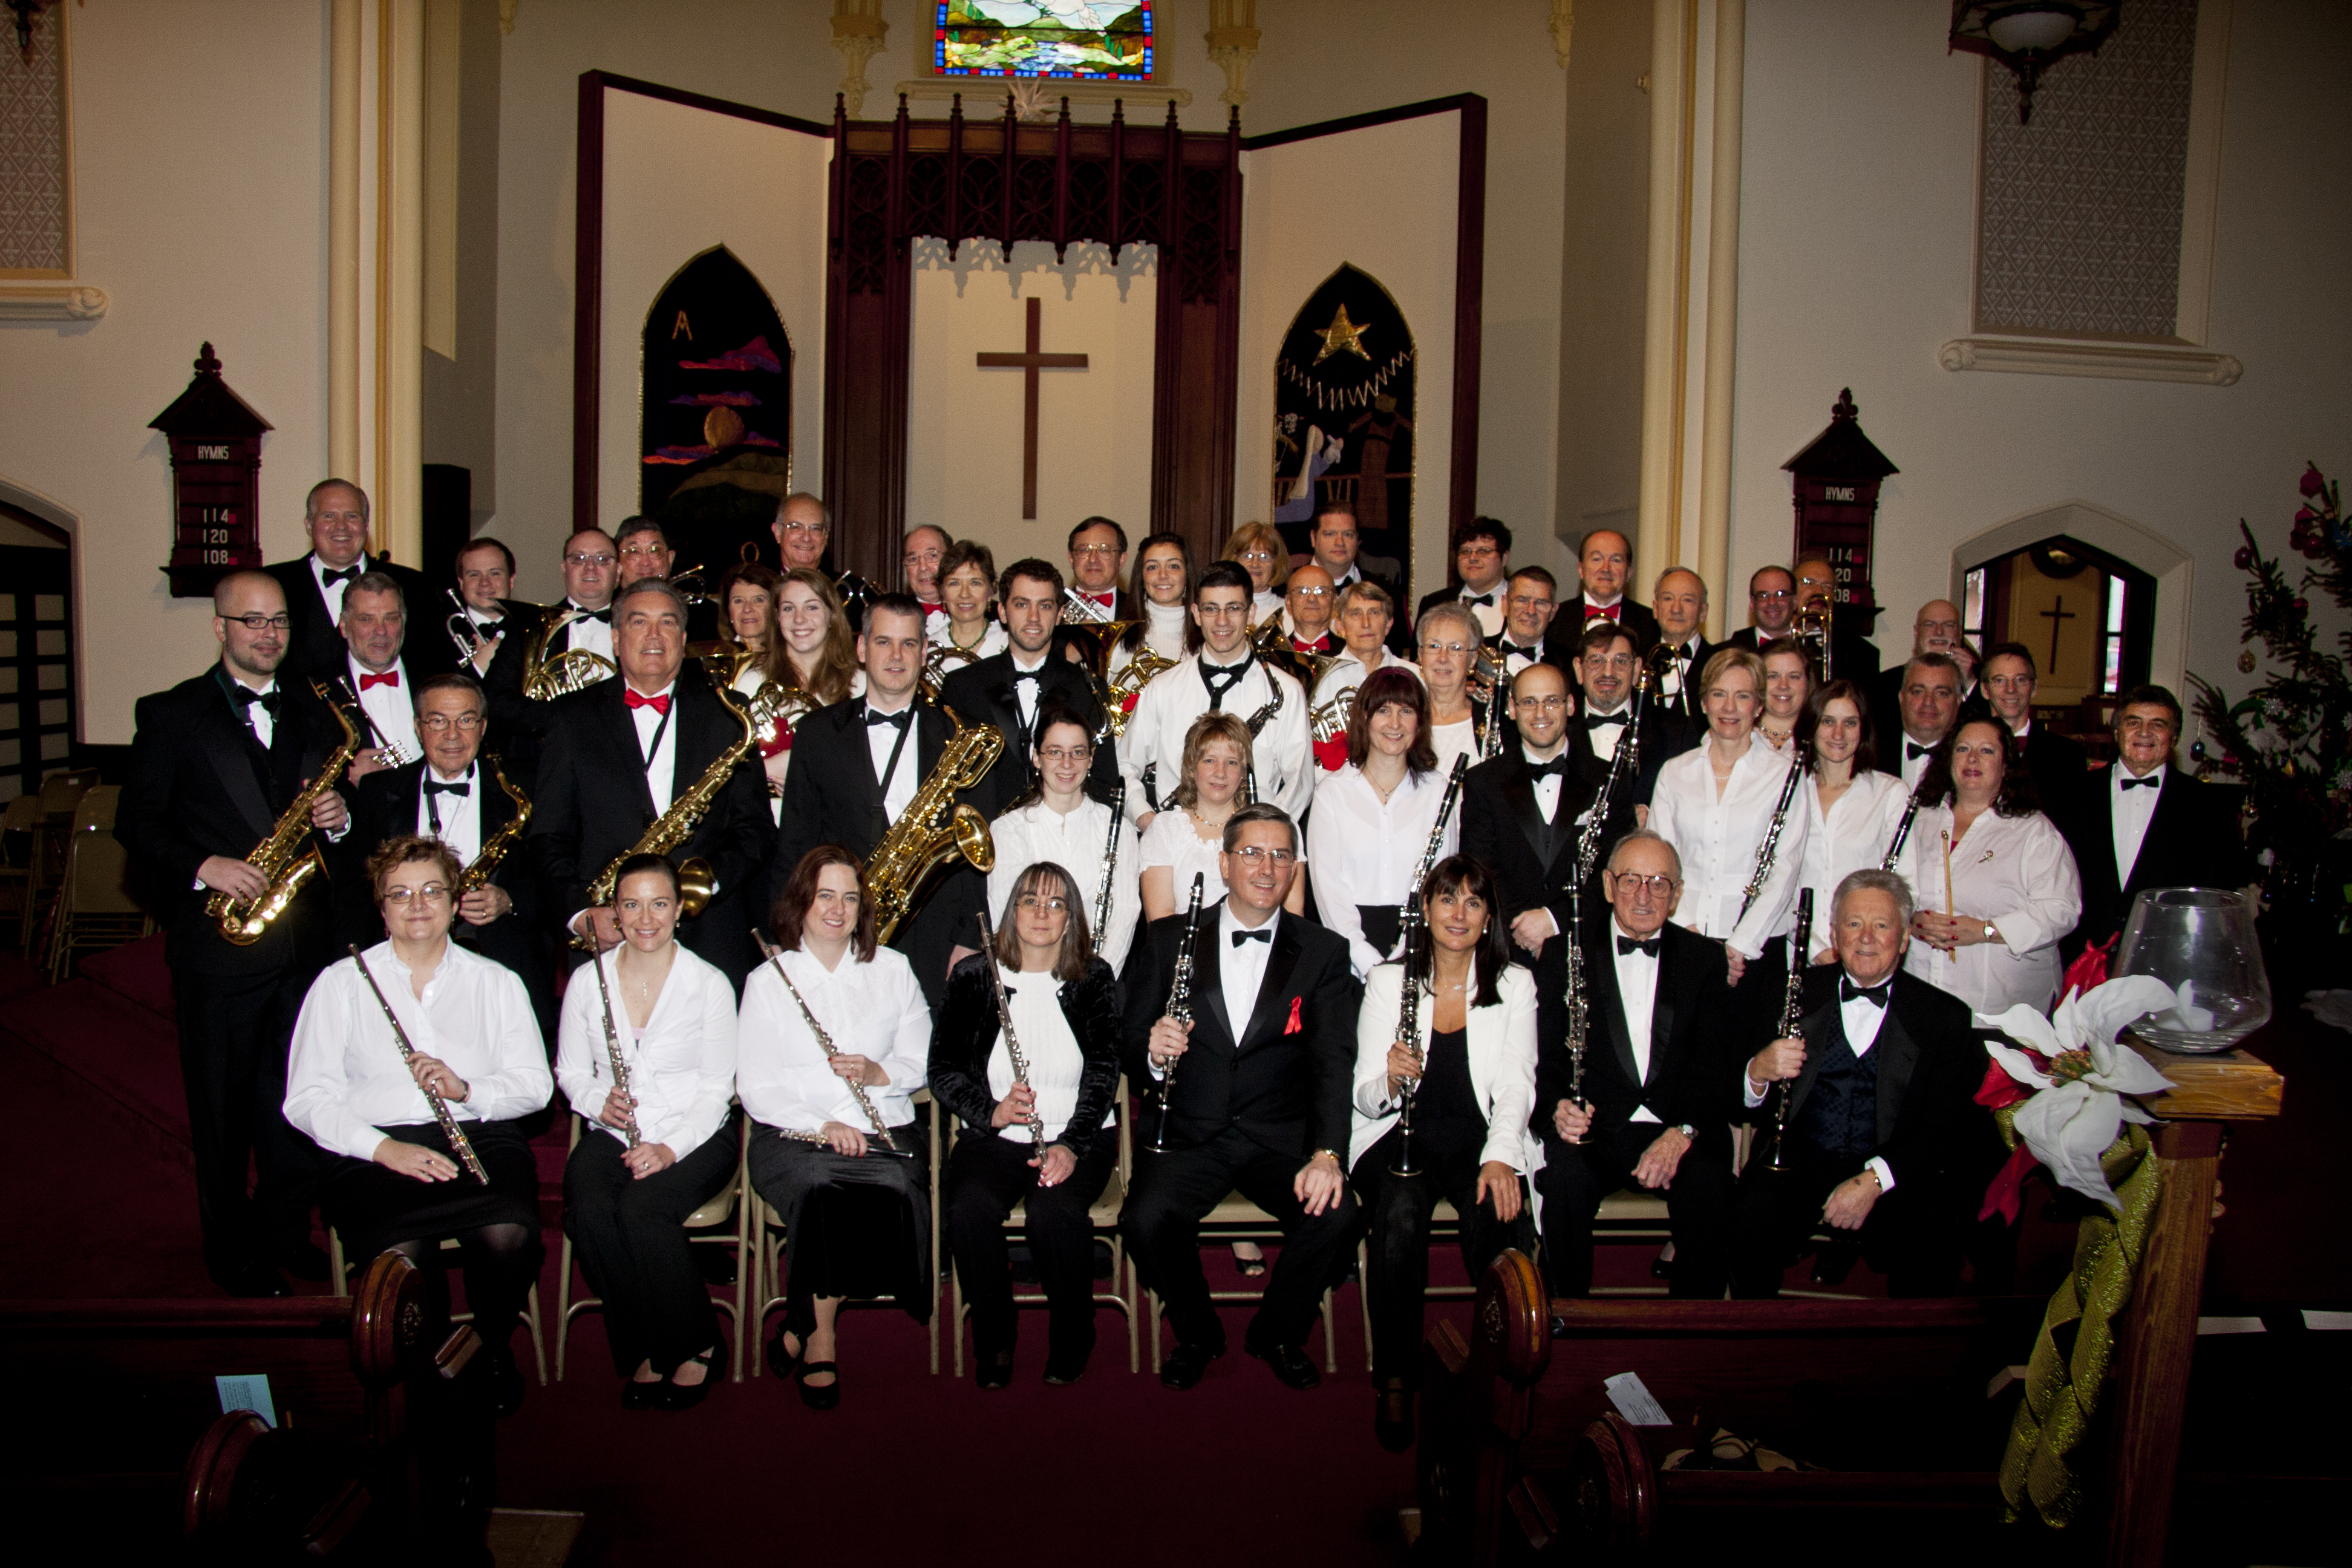 Middlesex Symphonic Band, Middletown, CT, USA, 2009